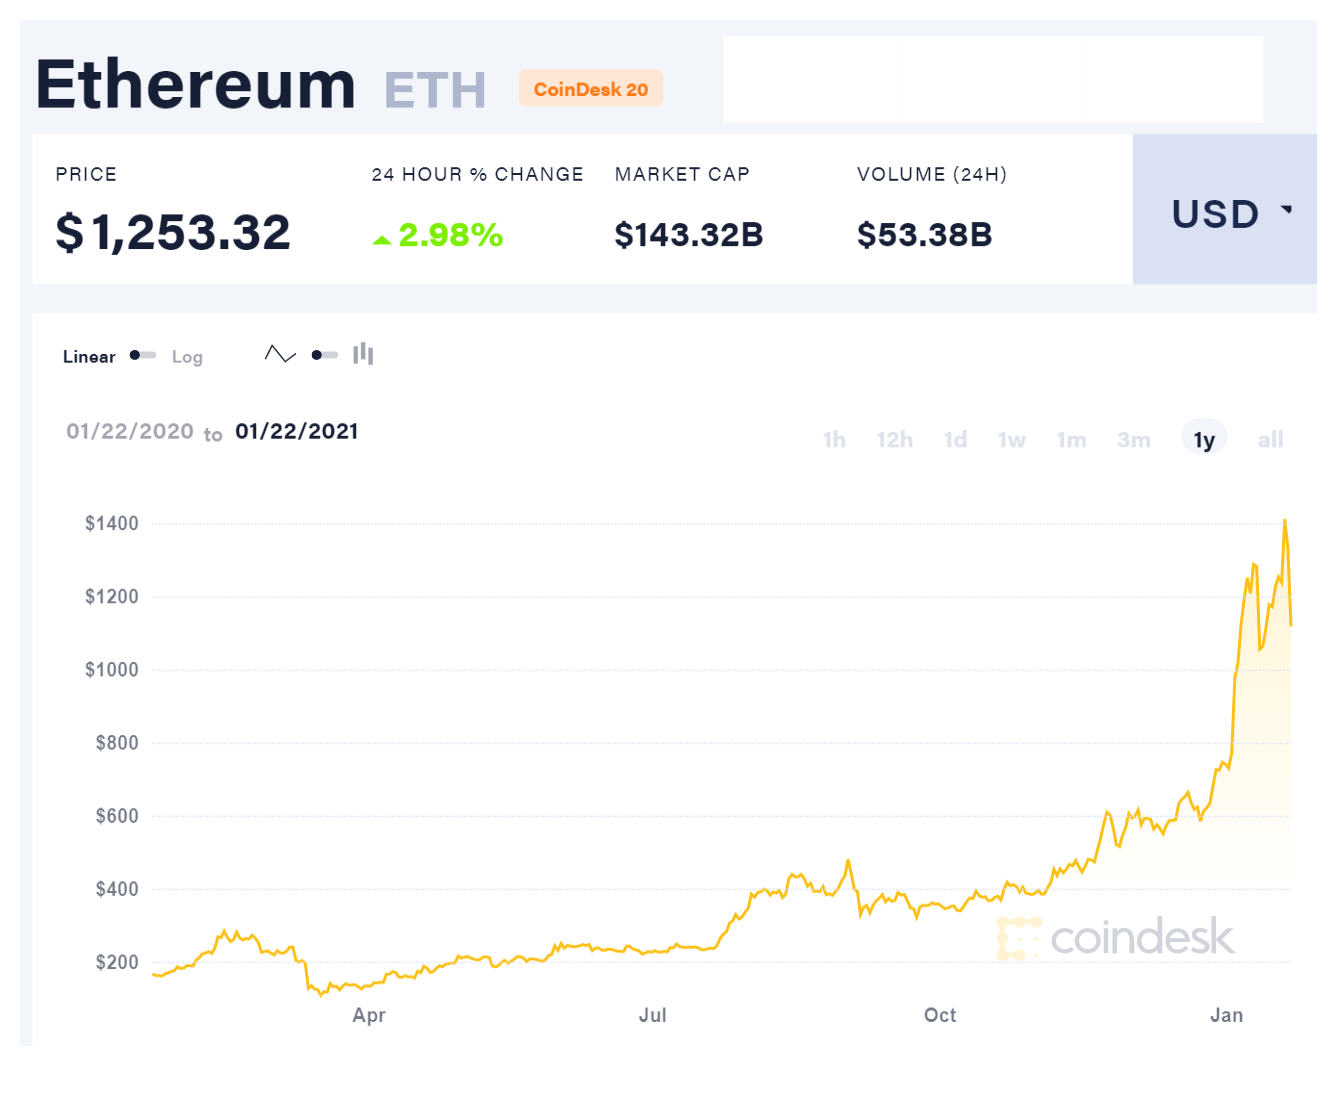 ethereum price chart from january 22 2020 to january 22 2021